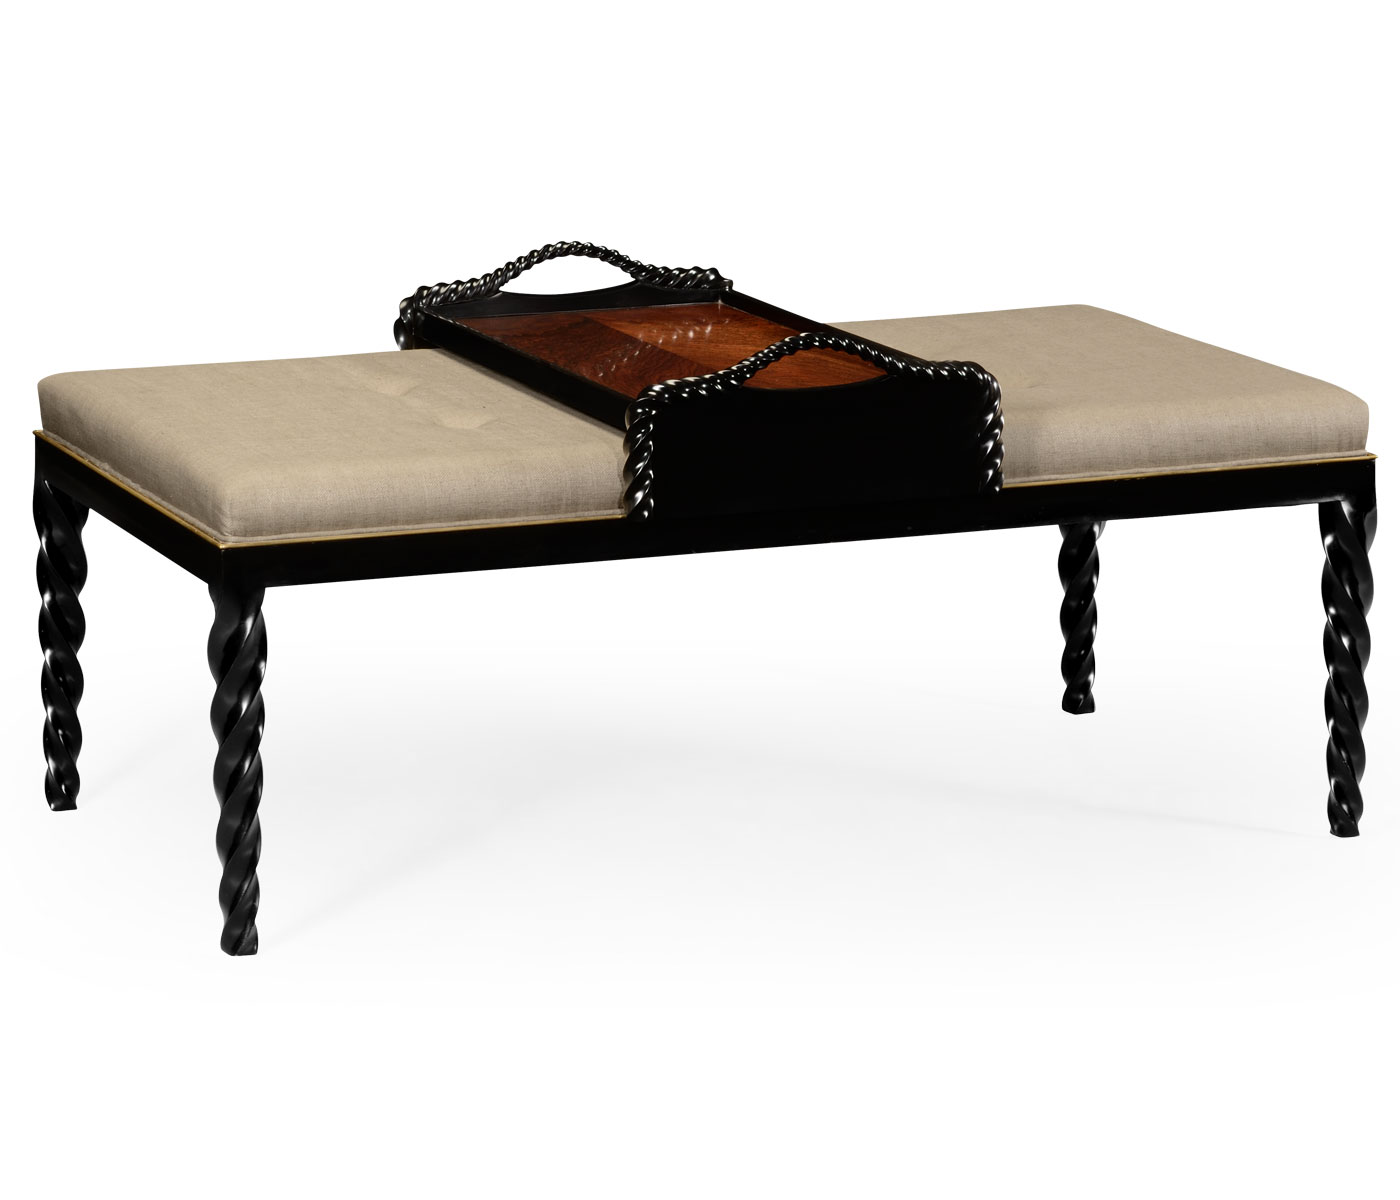 Cocktail Ottoman For Tray Table And Black Barleytwist Legs, Upholstered In  MAZO